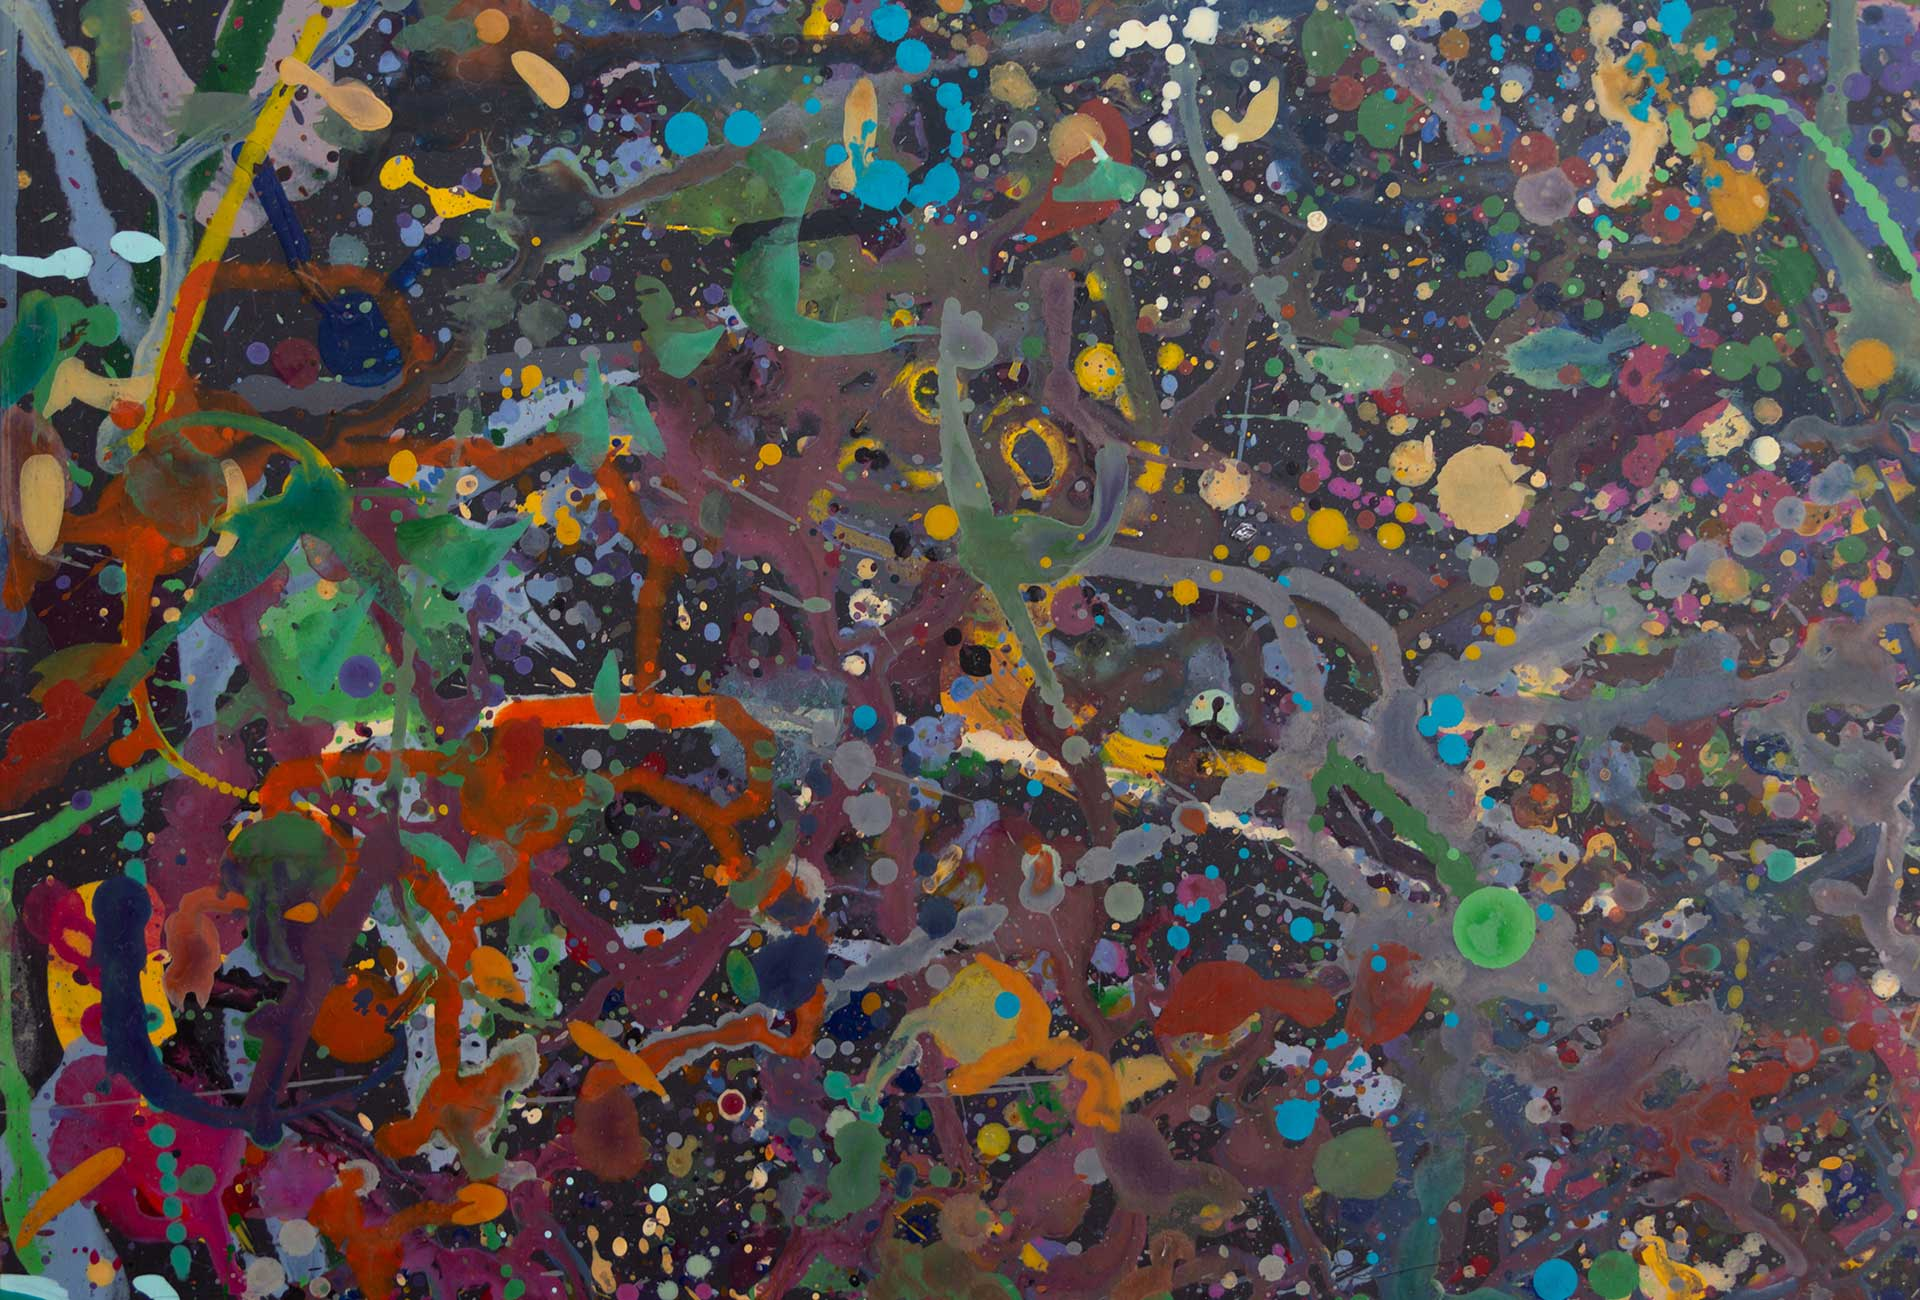 Abstract expressionism painting - Celebrities at a party in Yarra Glen - Detail 2